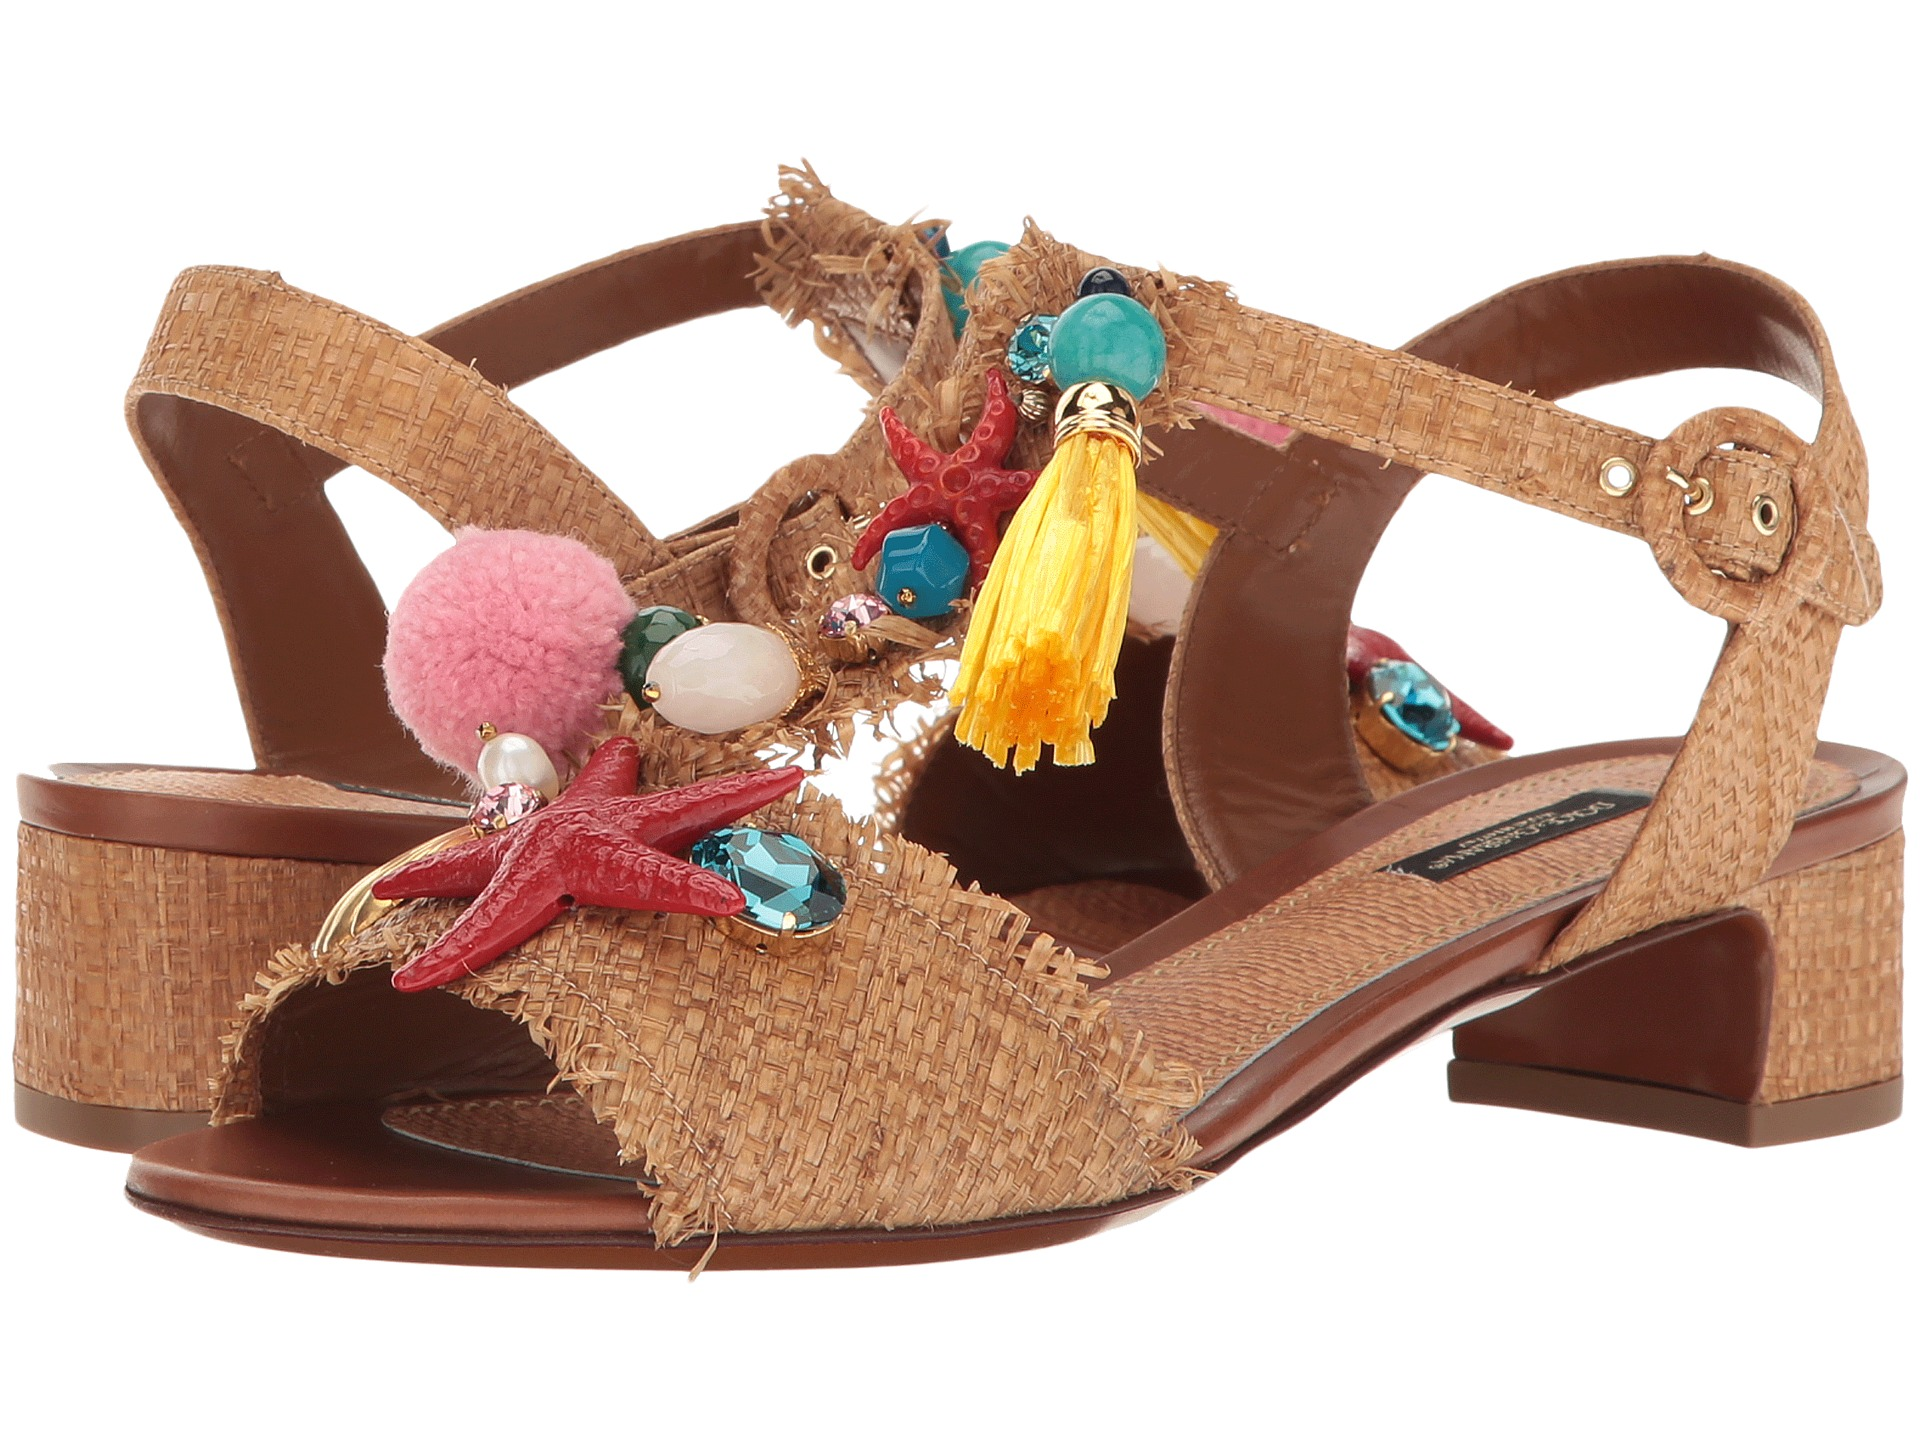 Dolce & Gabbana Raffia T-Strap Sandal with Shells 30mm